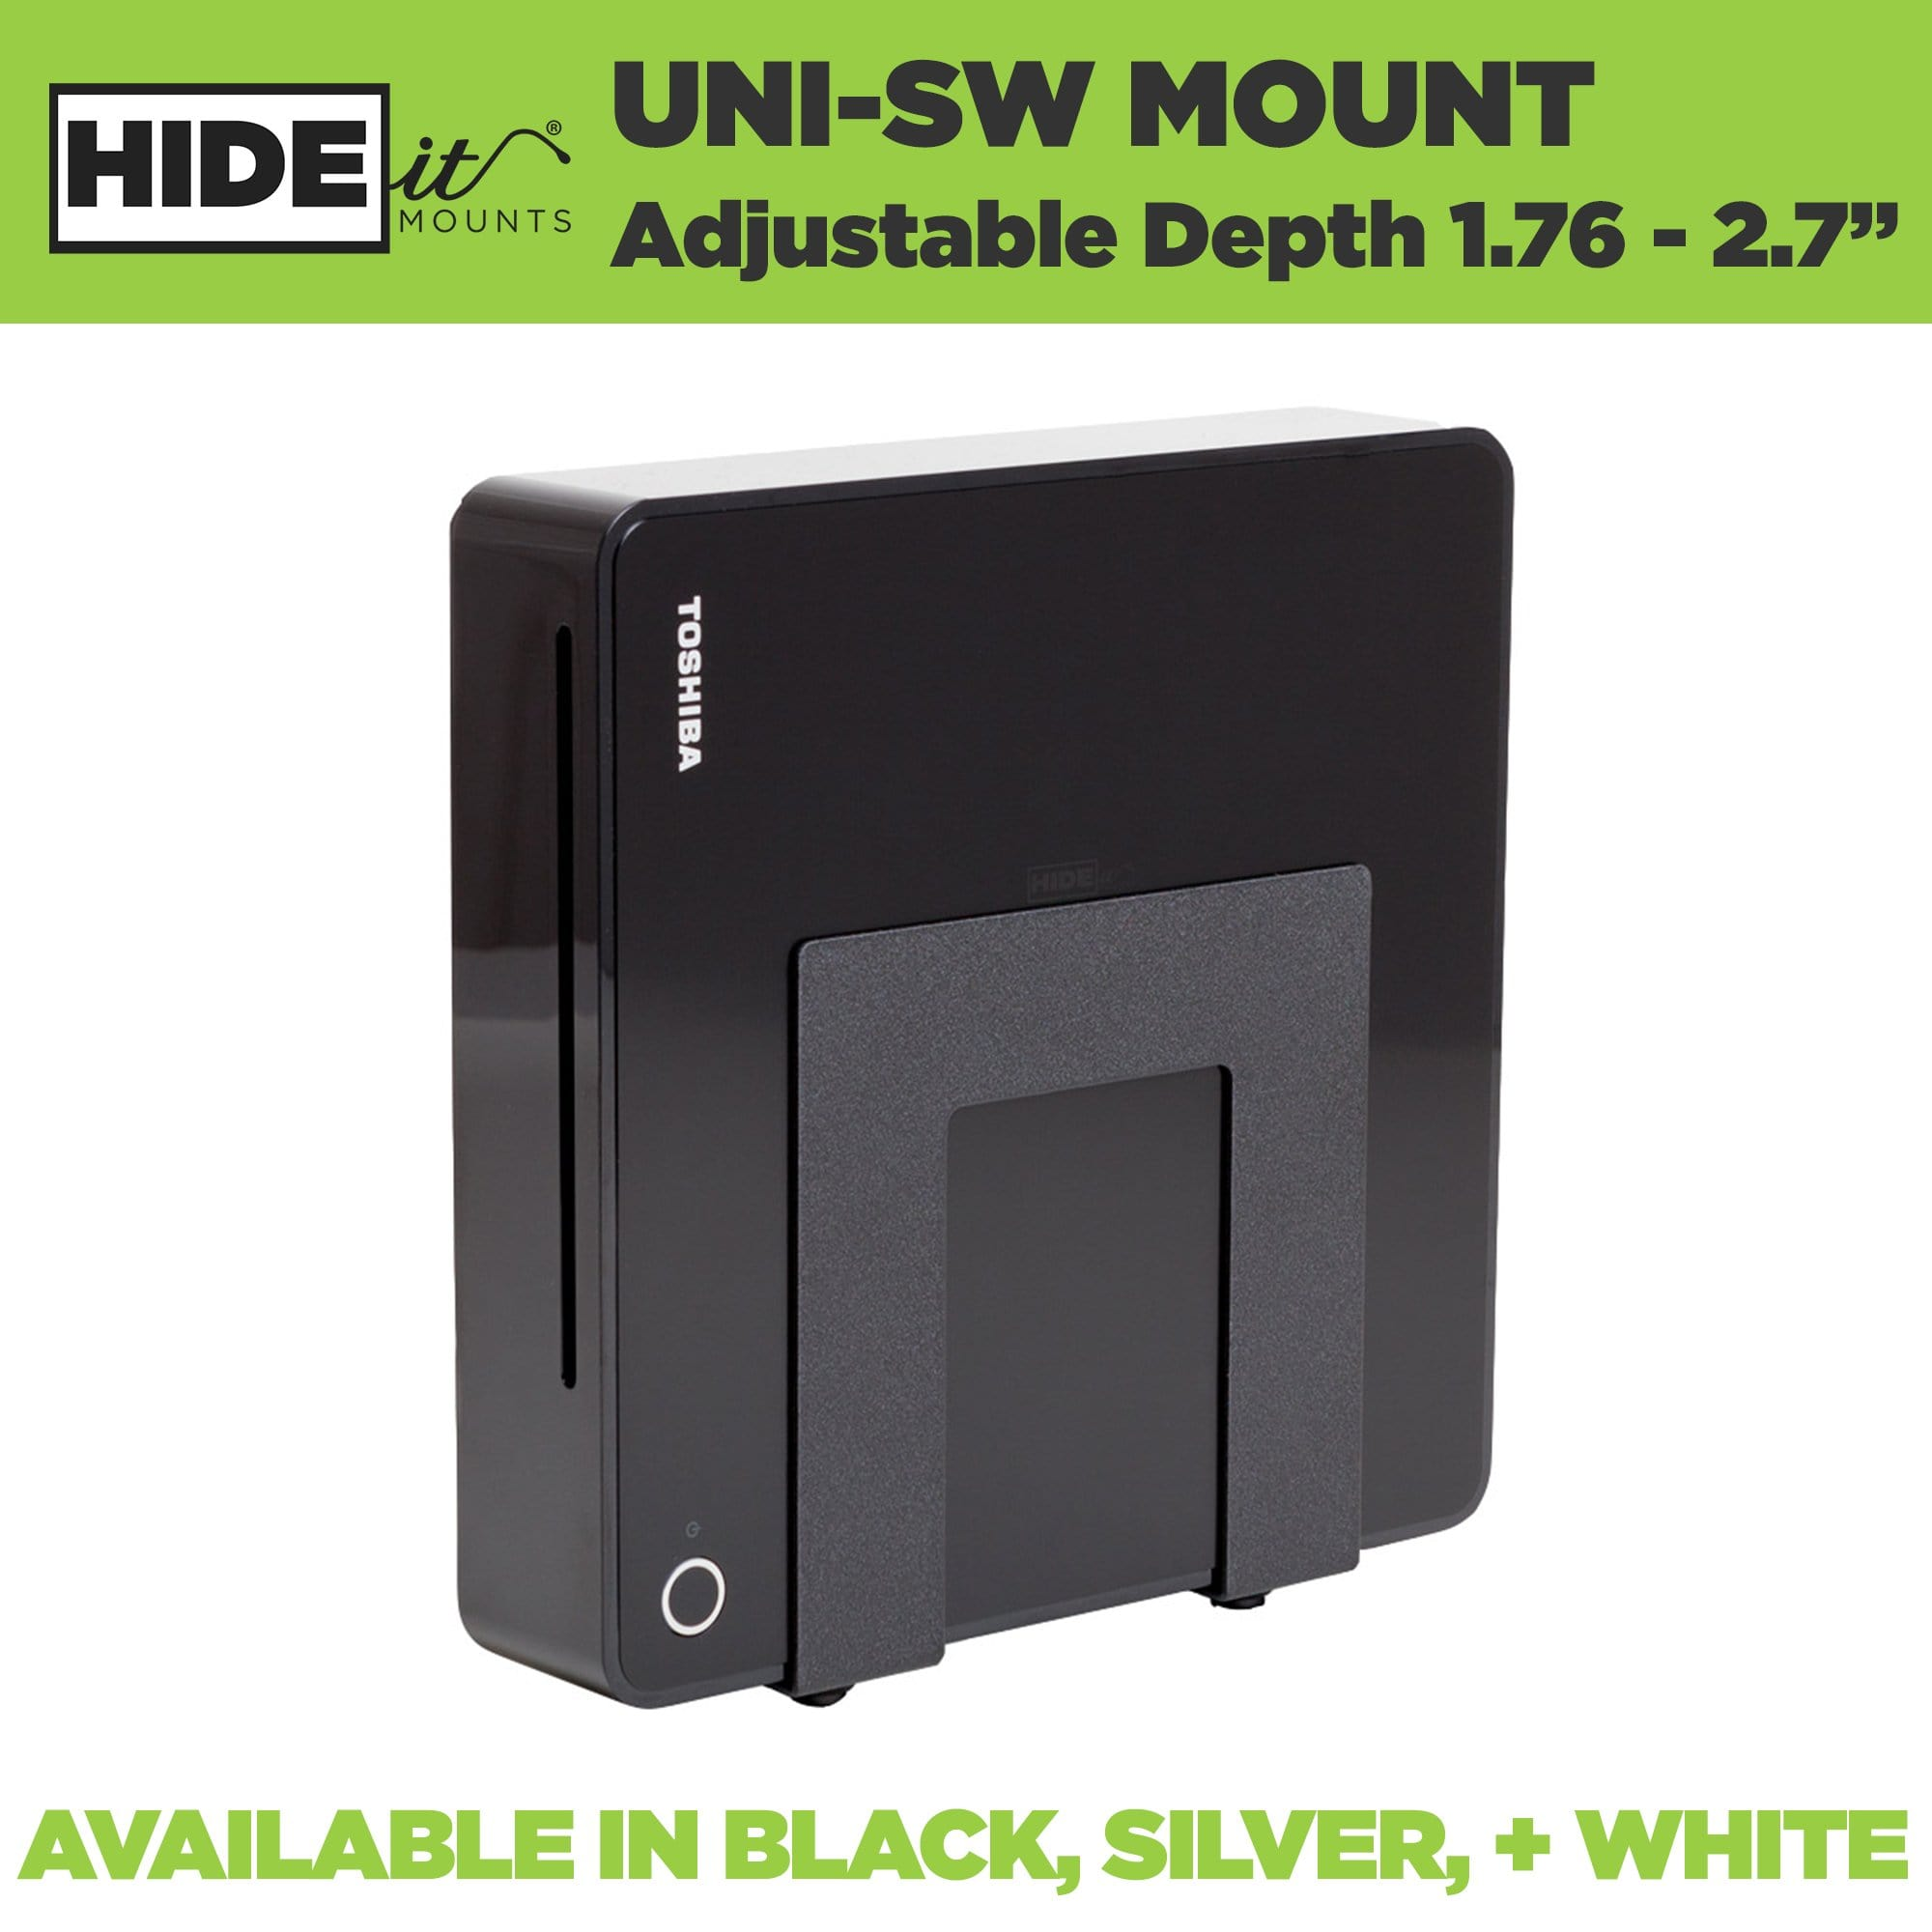 HIDEit Uni-SW adjustable wall hanging mount in black, silver, and white.